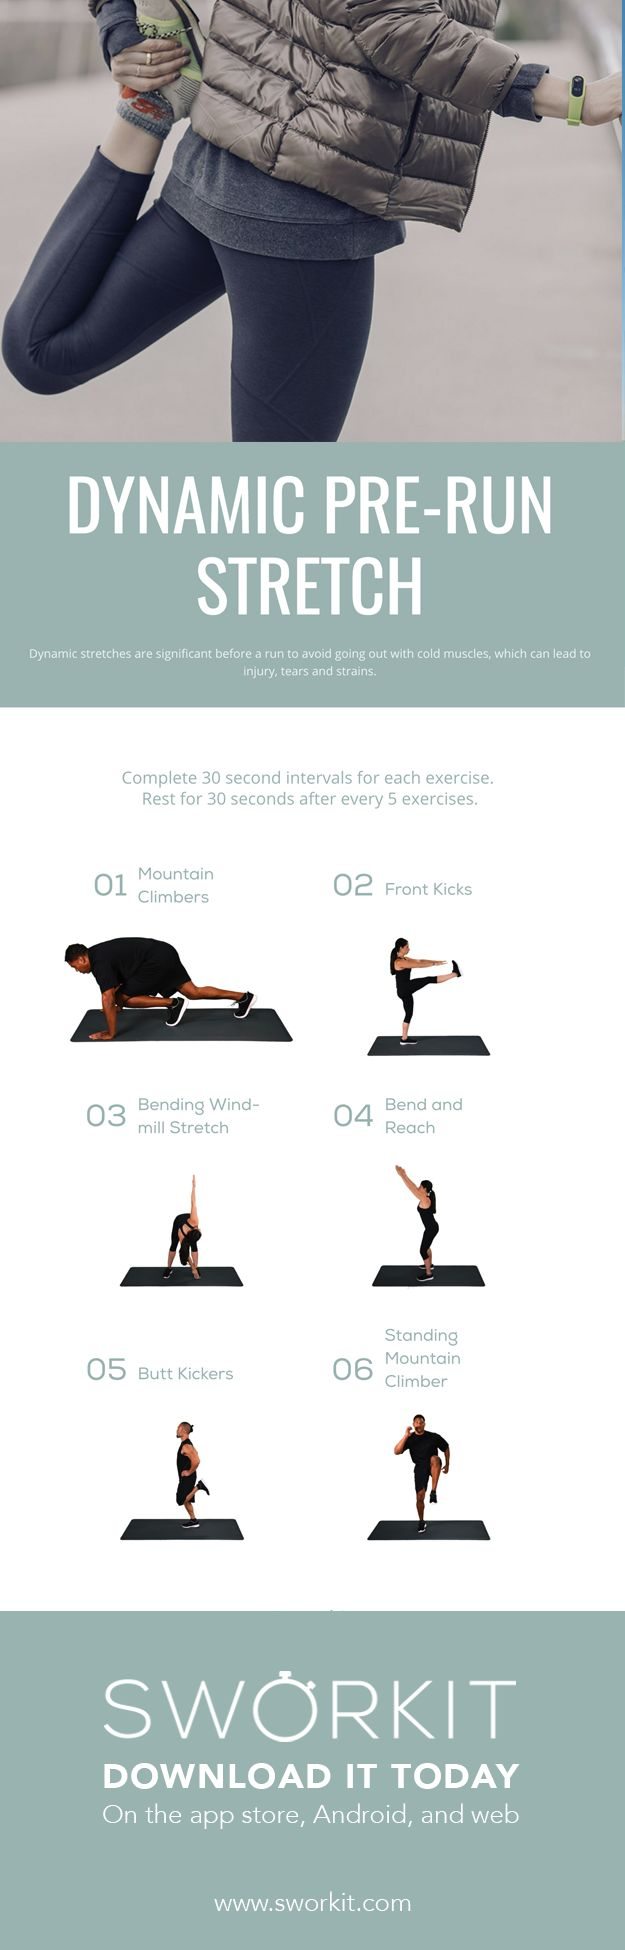 A dynamic pre-run stretch! The perfect stretch before you head outside and run. You can do this workout at the gym or at home. An easy solution if you forget to stretch before your workout. Dynamic workouts are important for runners to warm up muscles.